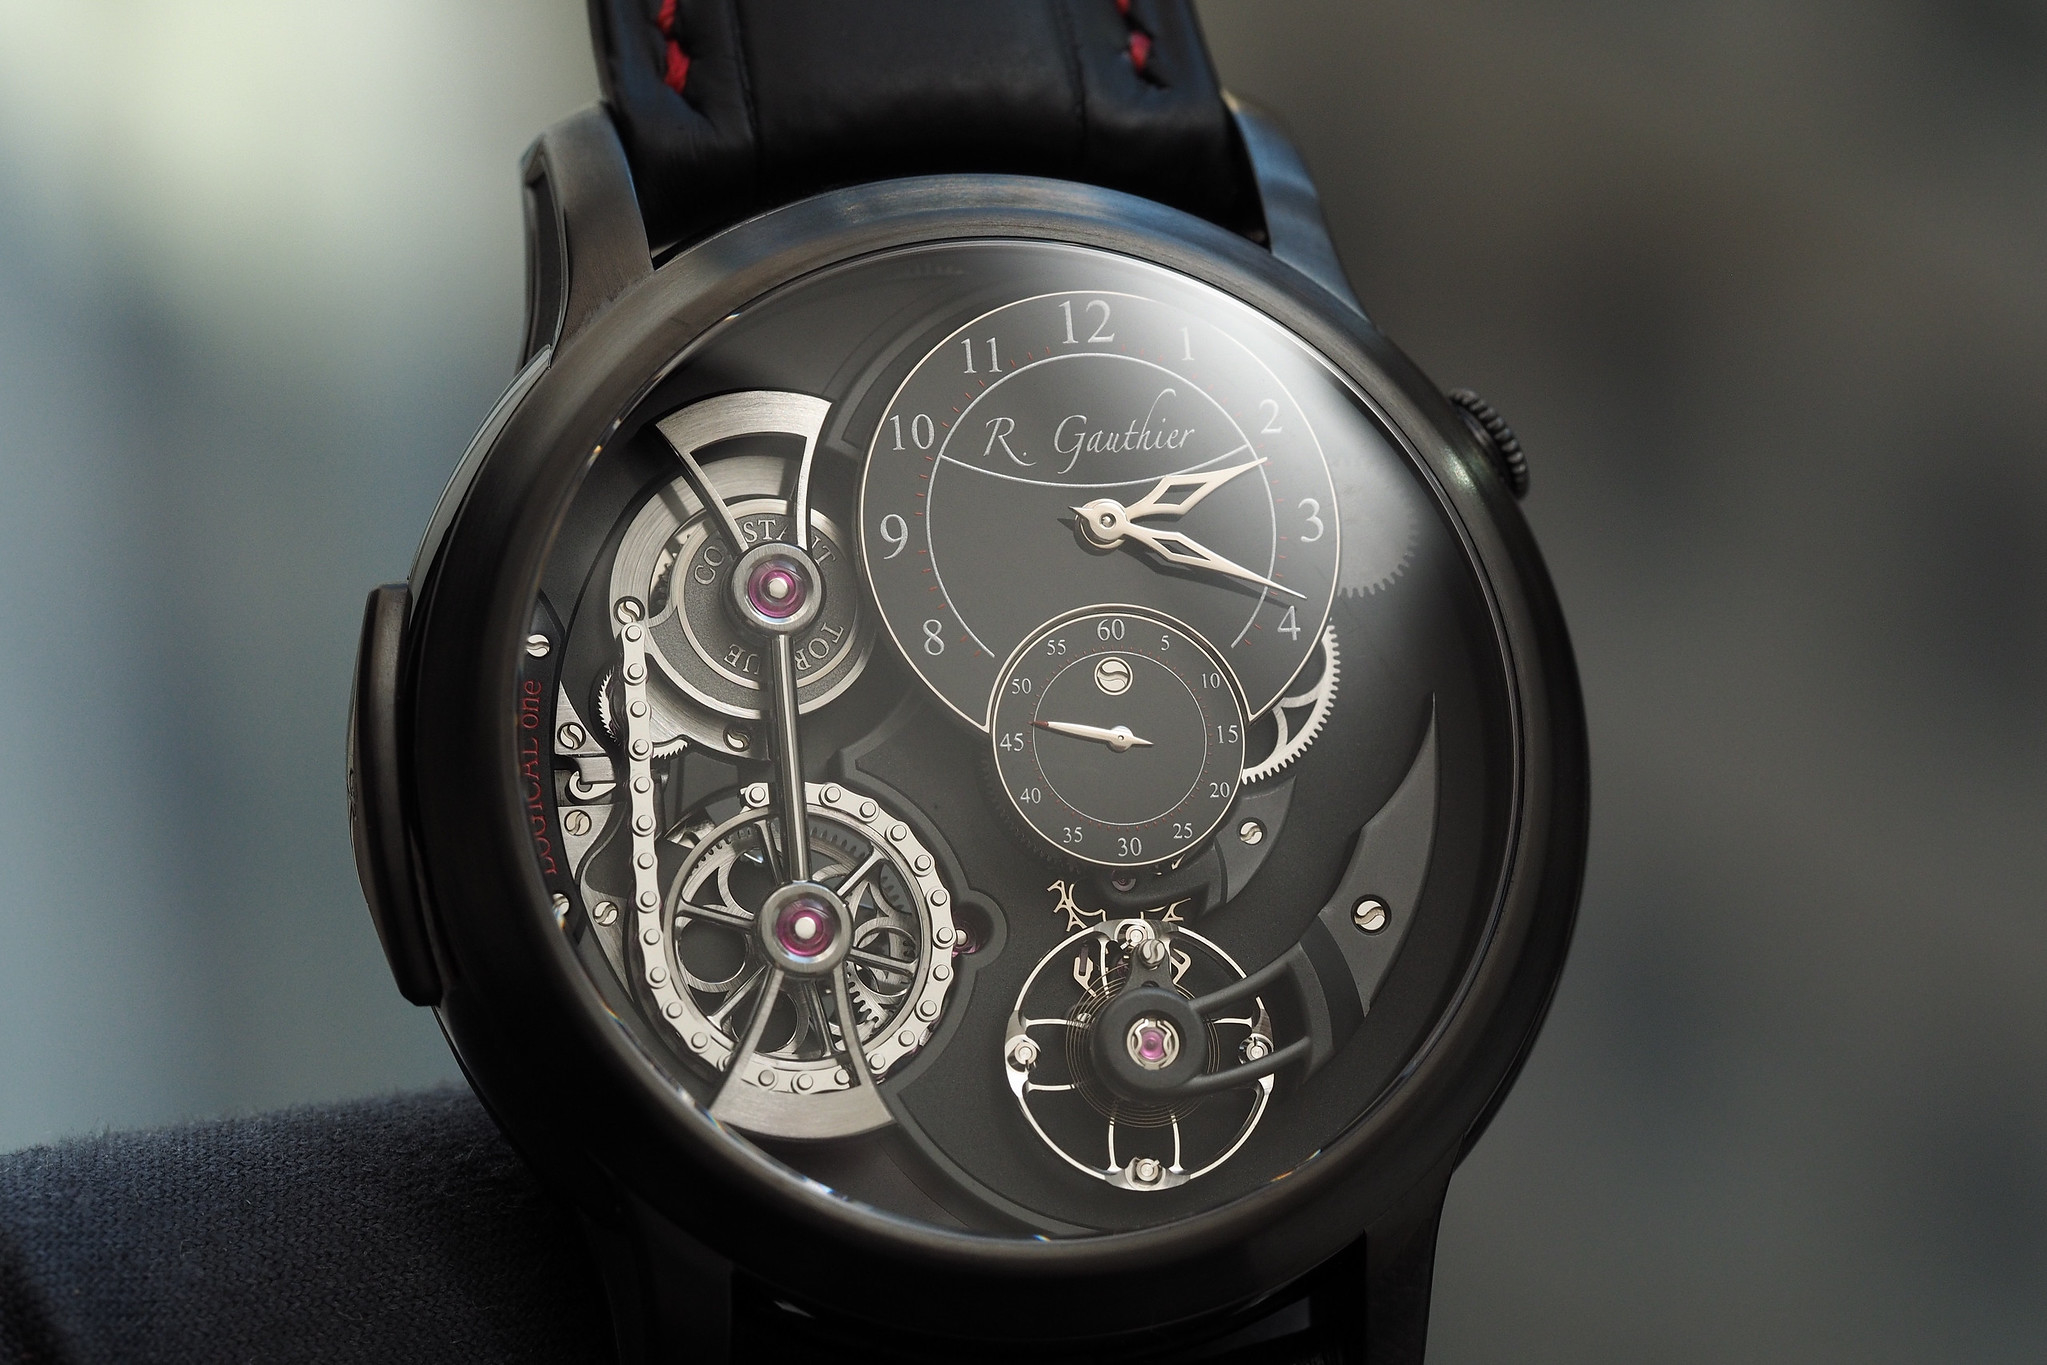 Video: Romain Gauthier demonstrates the Logical One